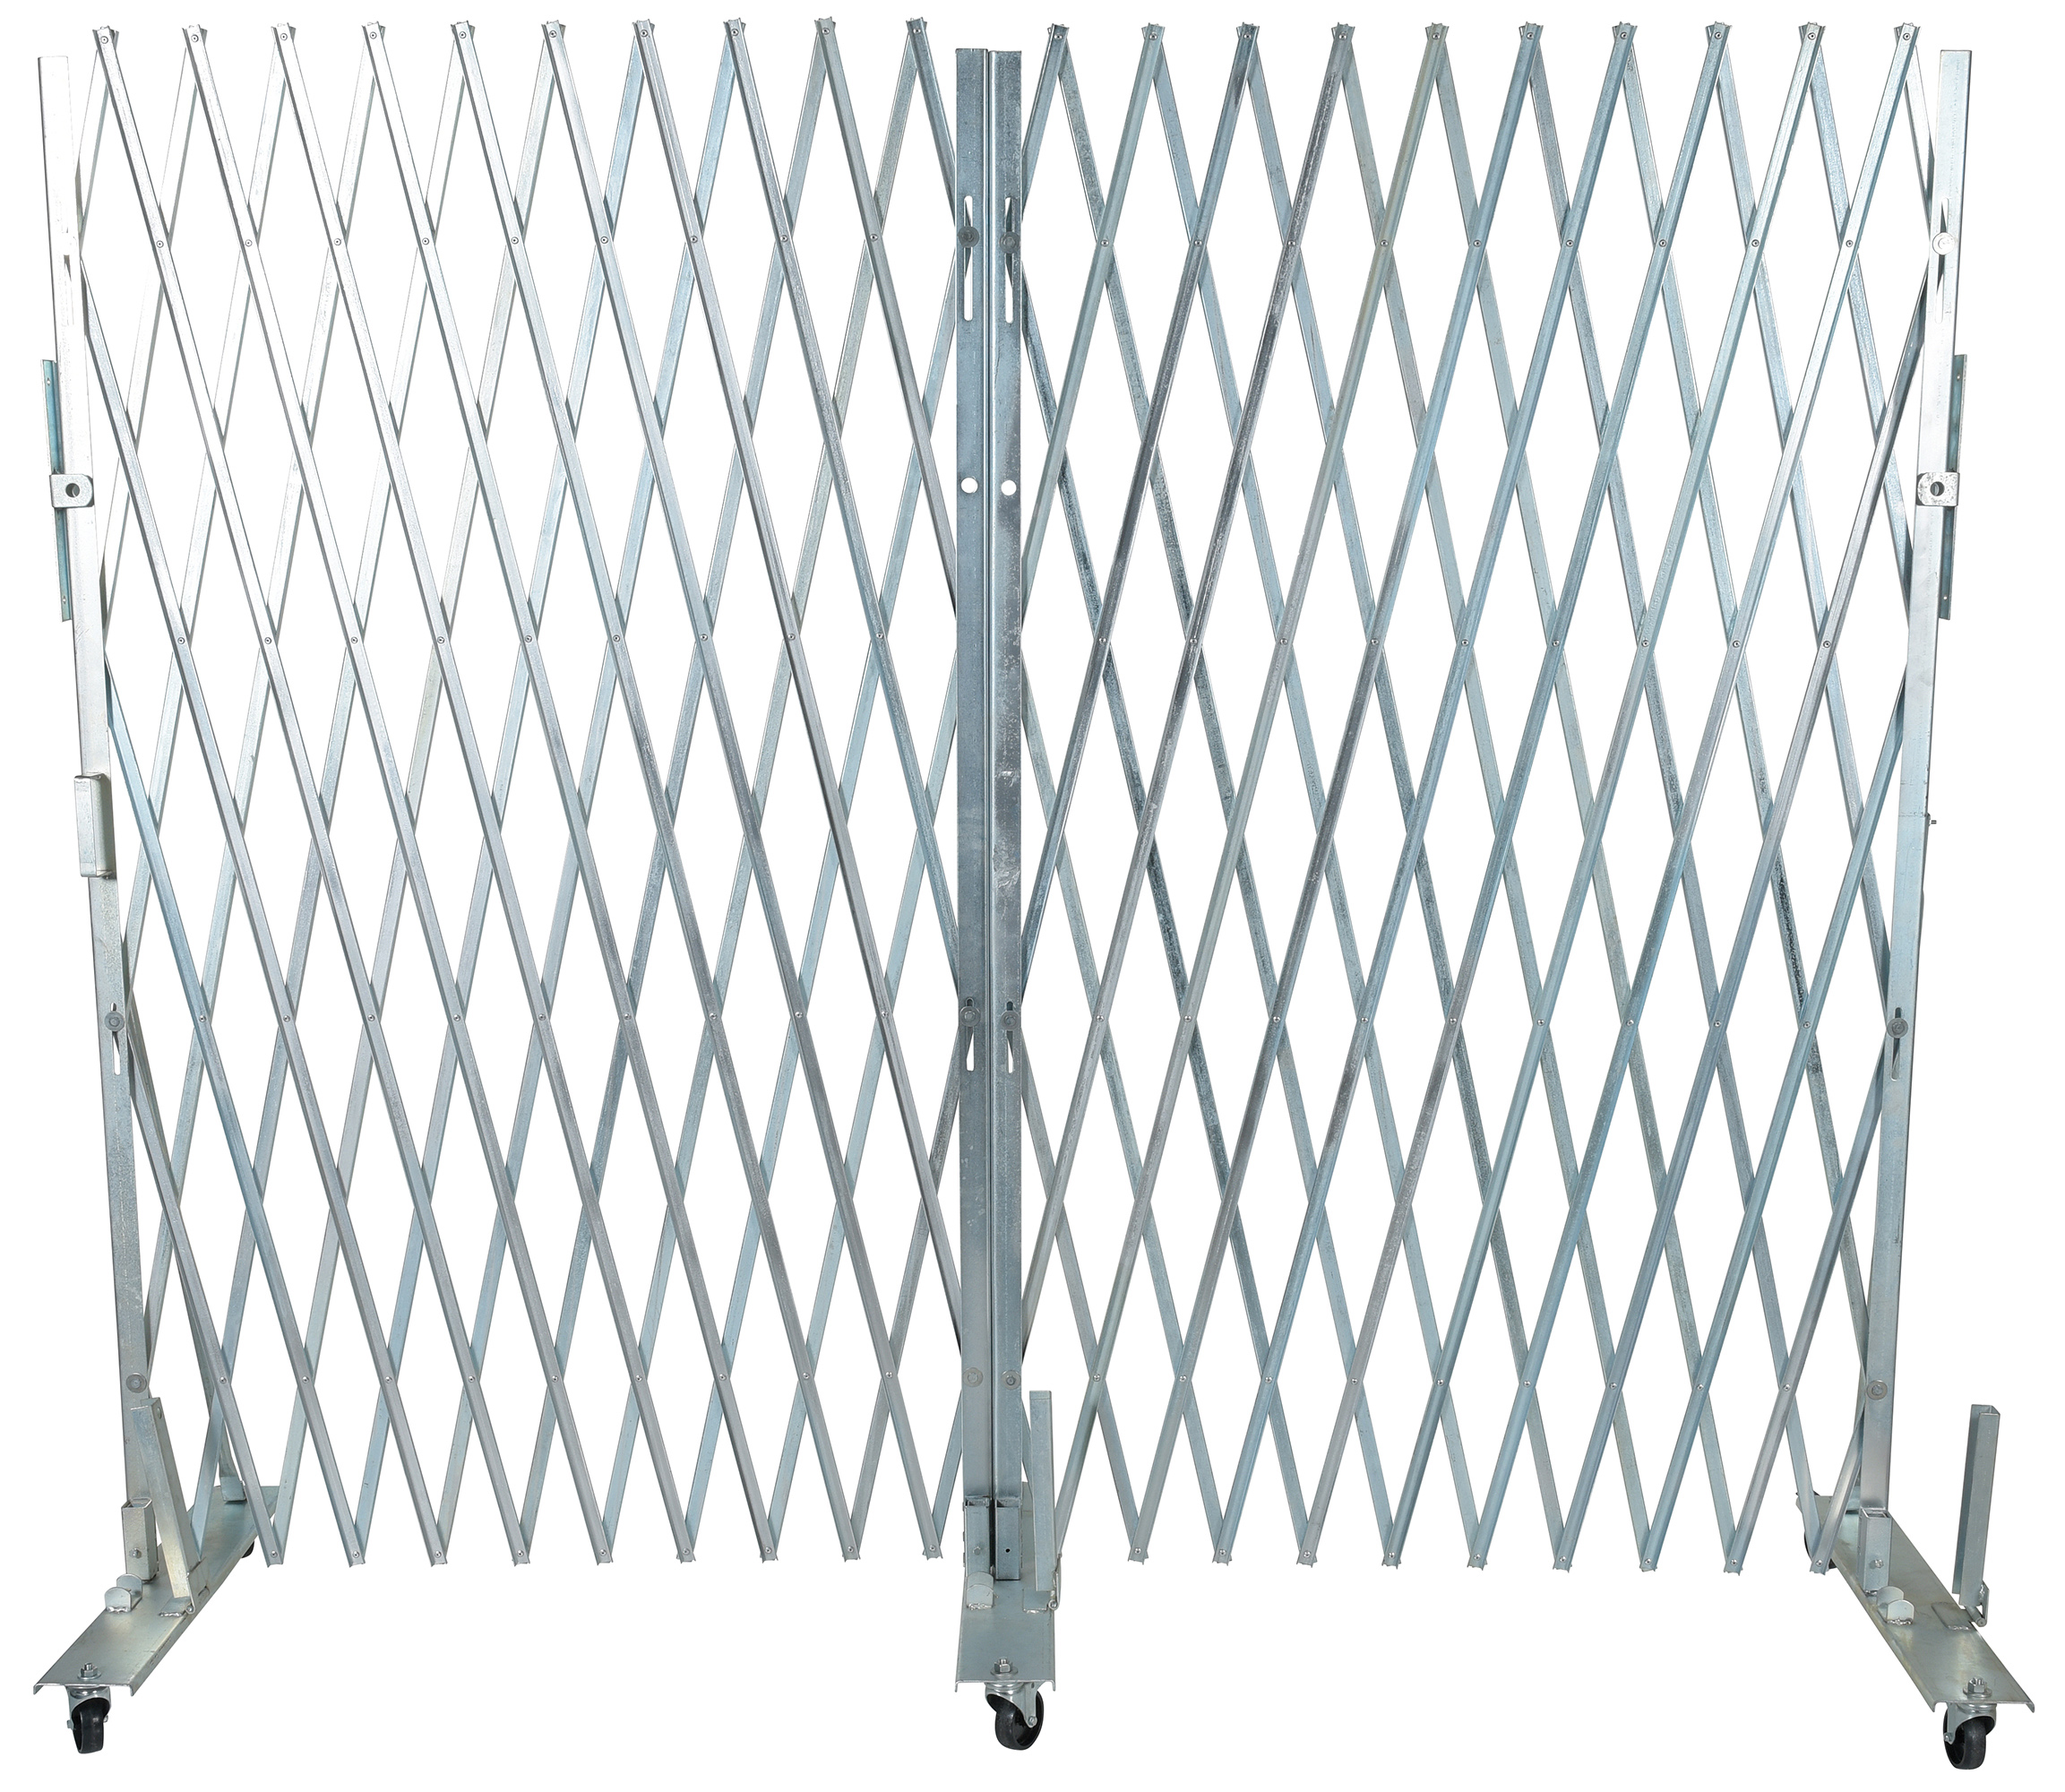 Vestil VXL-1265 Galvanized Portable Gate